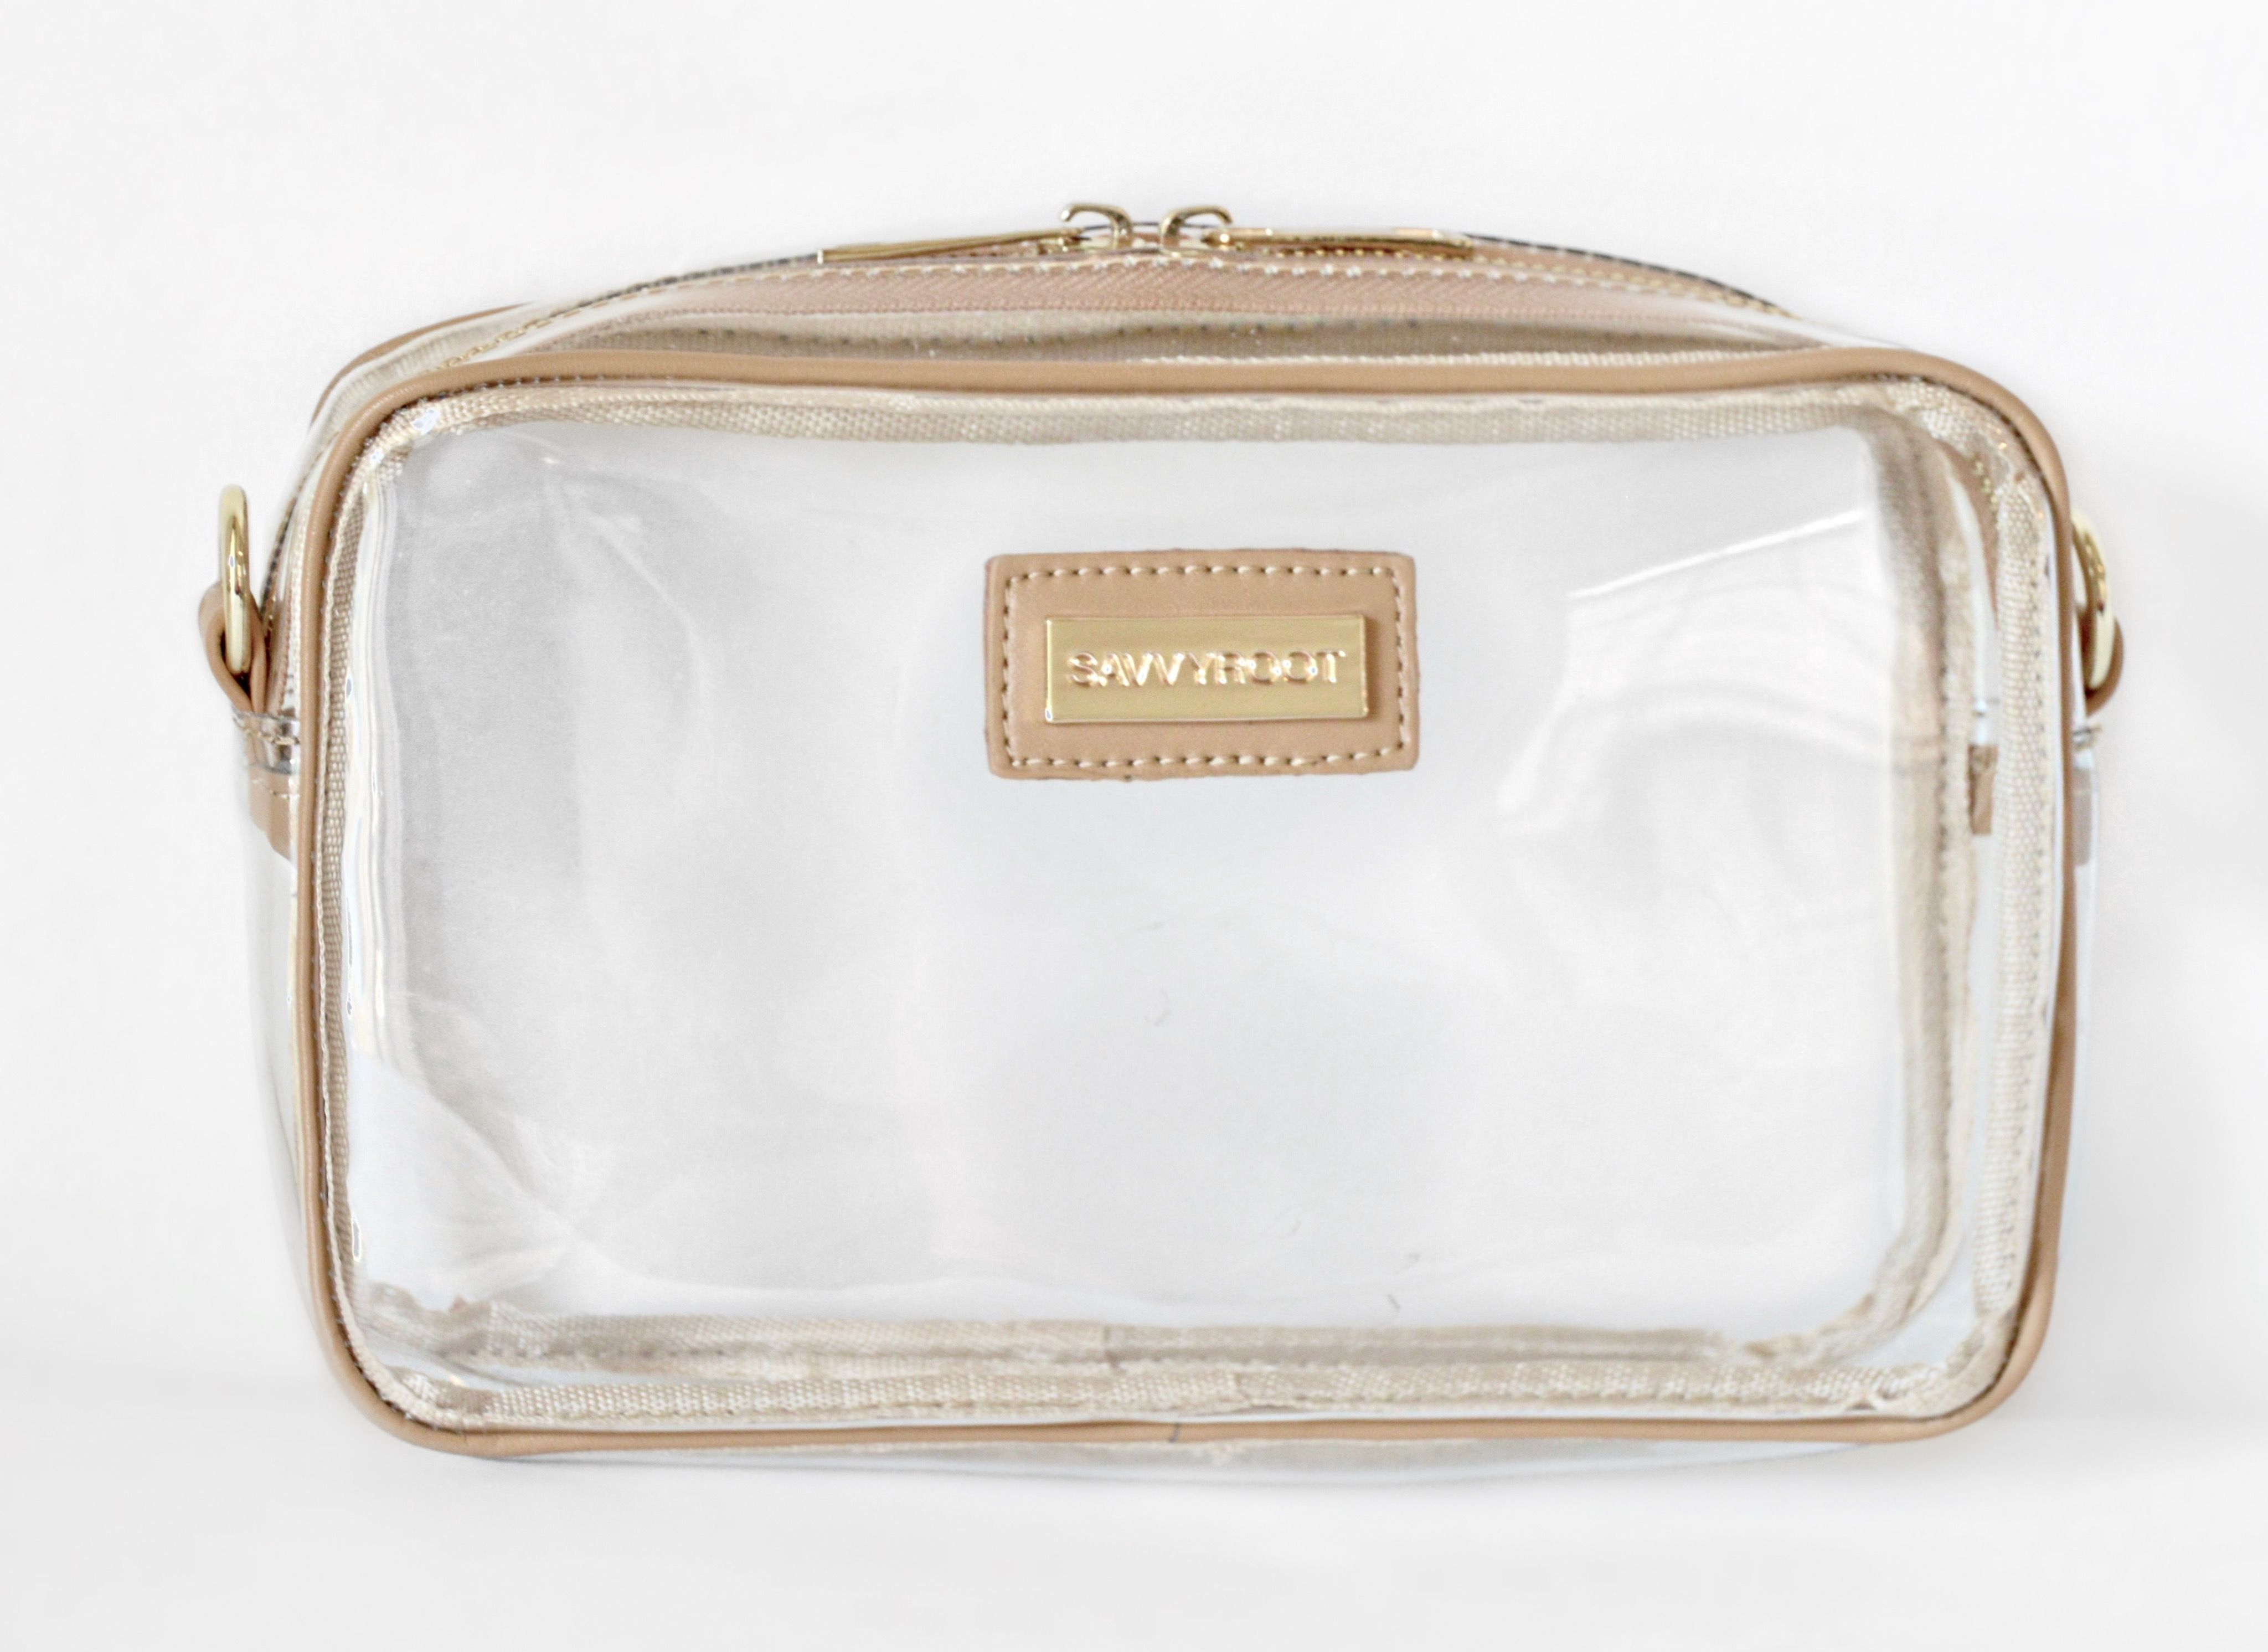 653f1efad86a Gameday Clear Bags | stadium-approved | Nude leather trim $50 ...